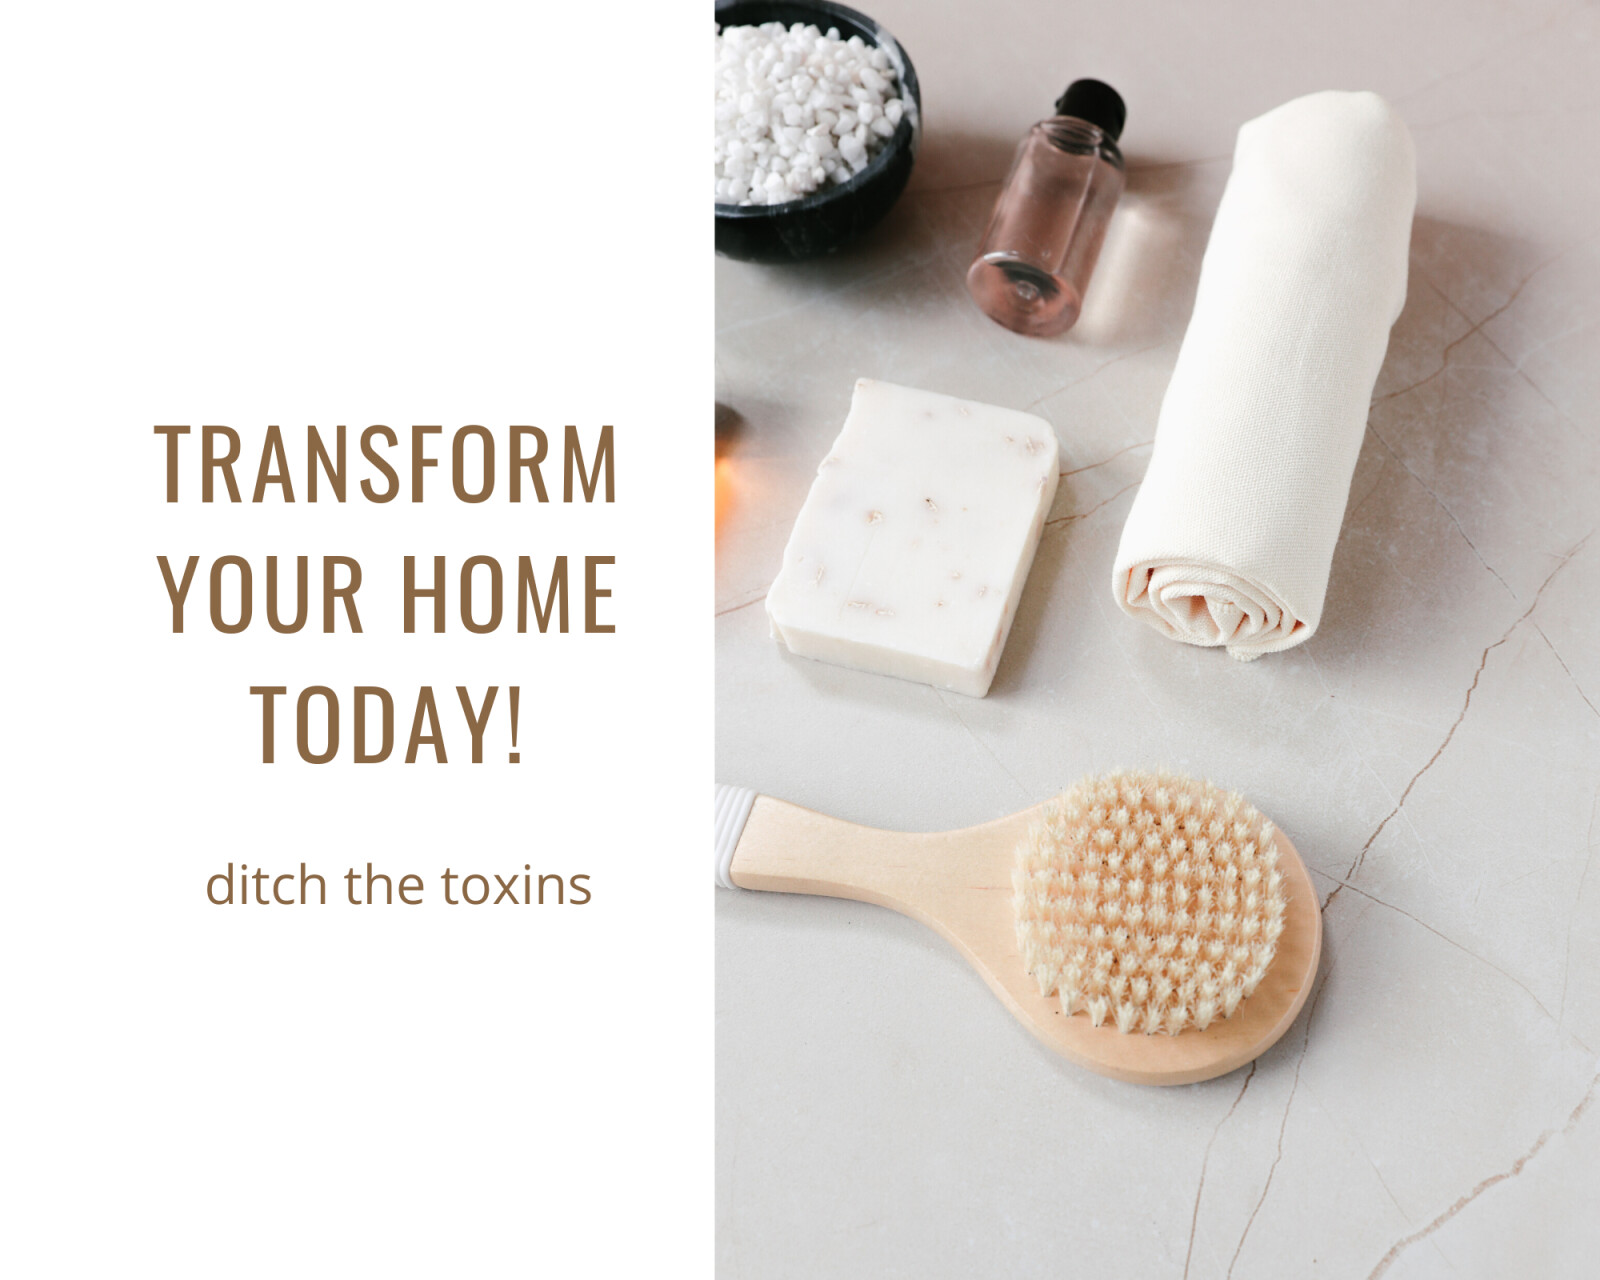 Make a Change and Transform Your Home, Part 2